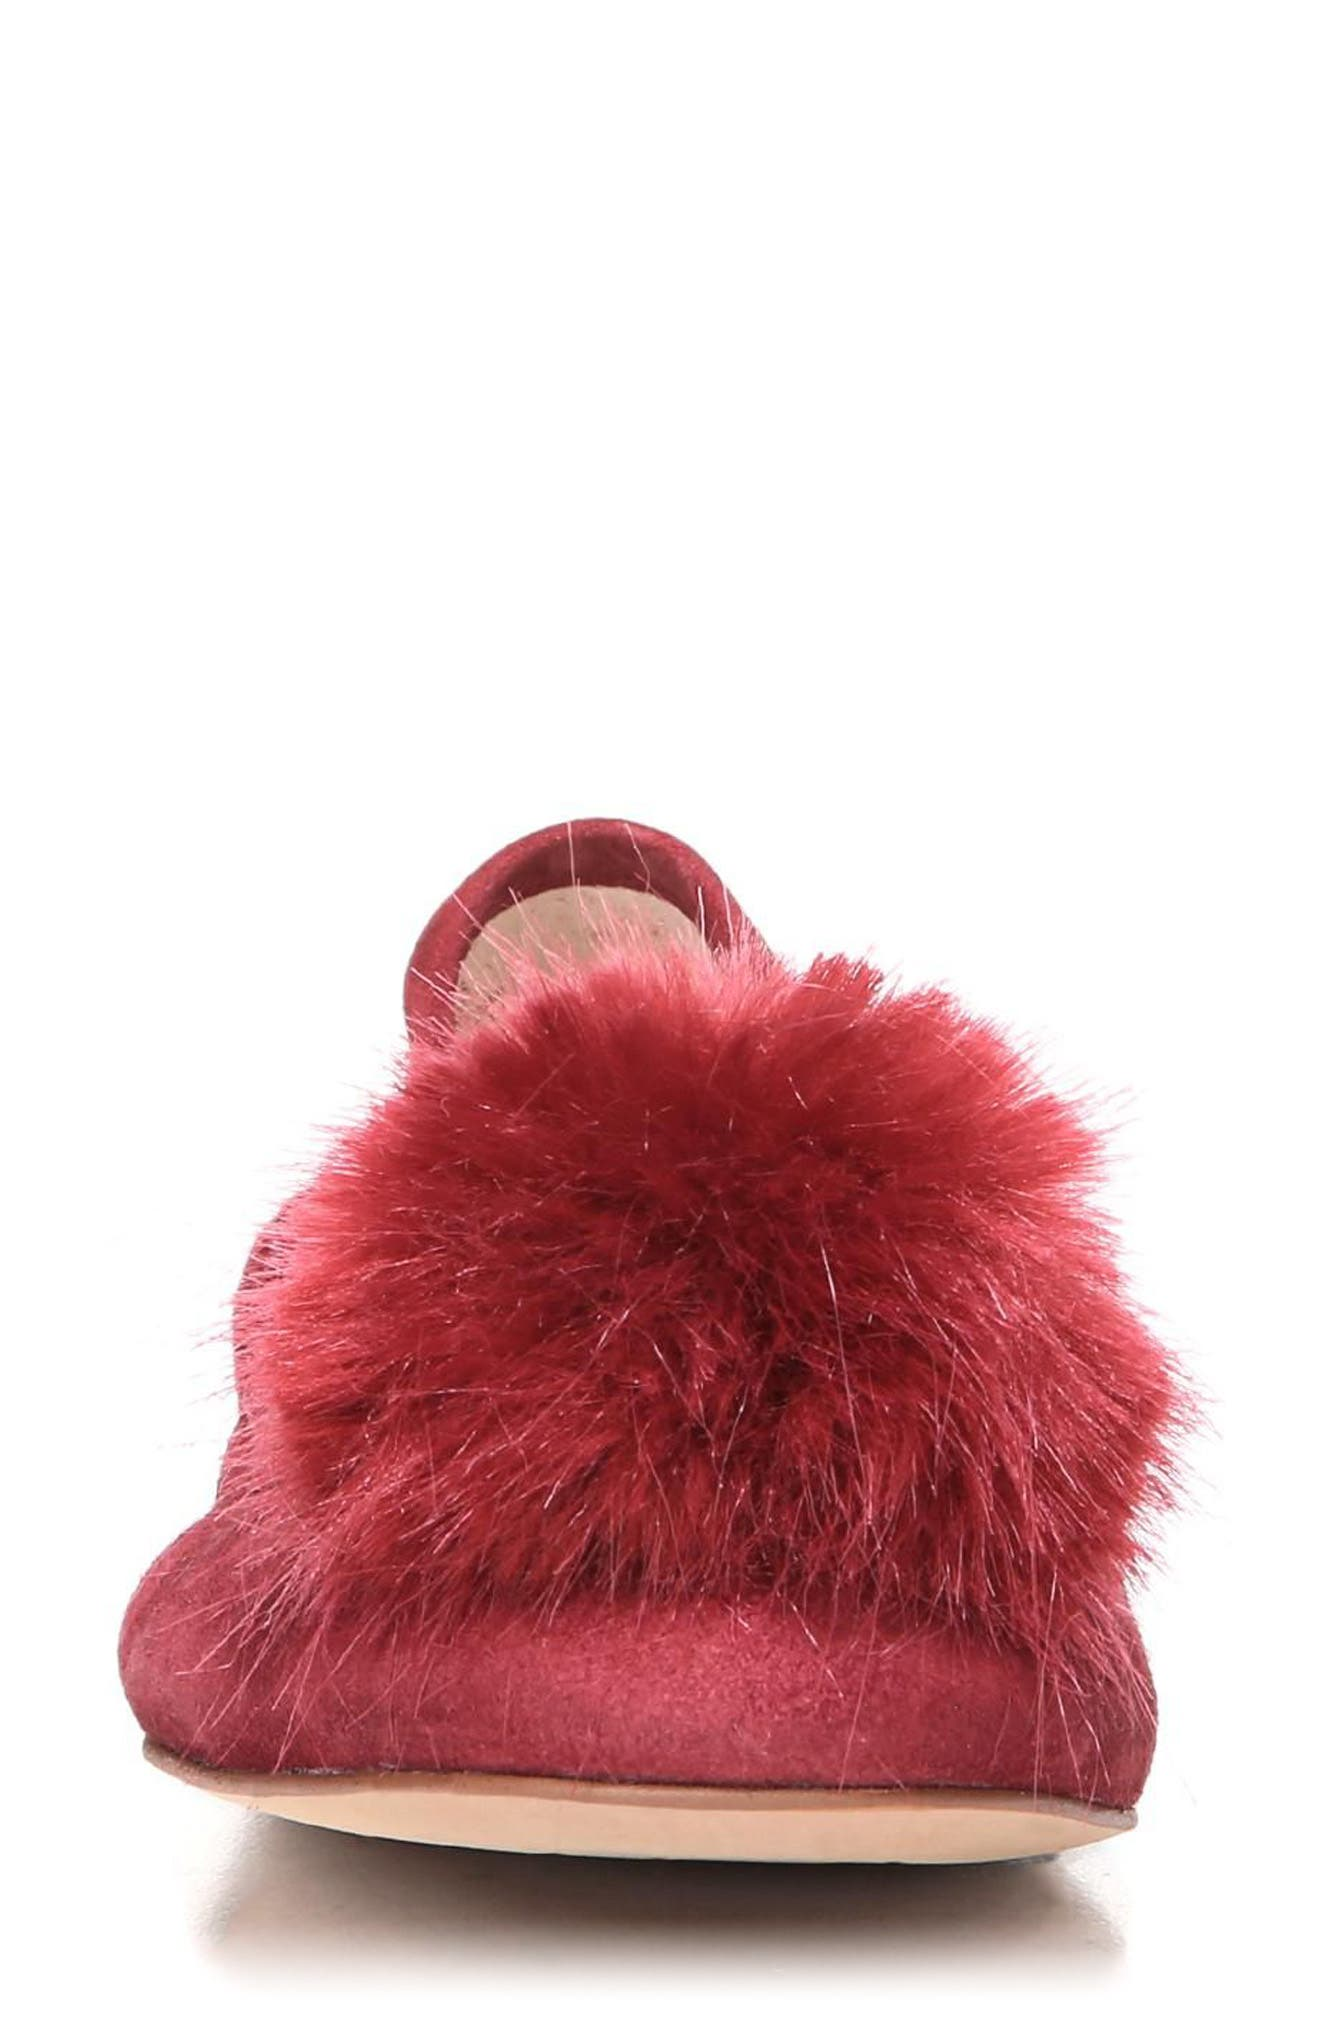 Farina Flat with Faux Fur Pompom,                             Alternate thumbnail 4, color,                             Tango Red Leather